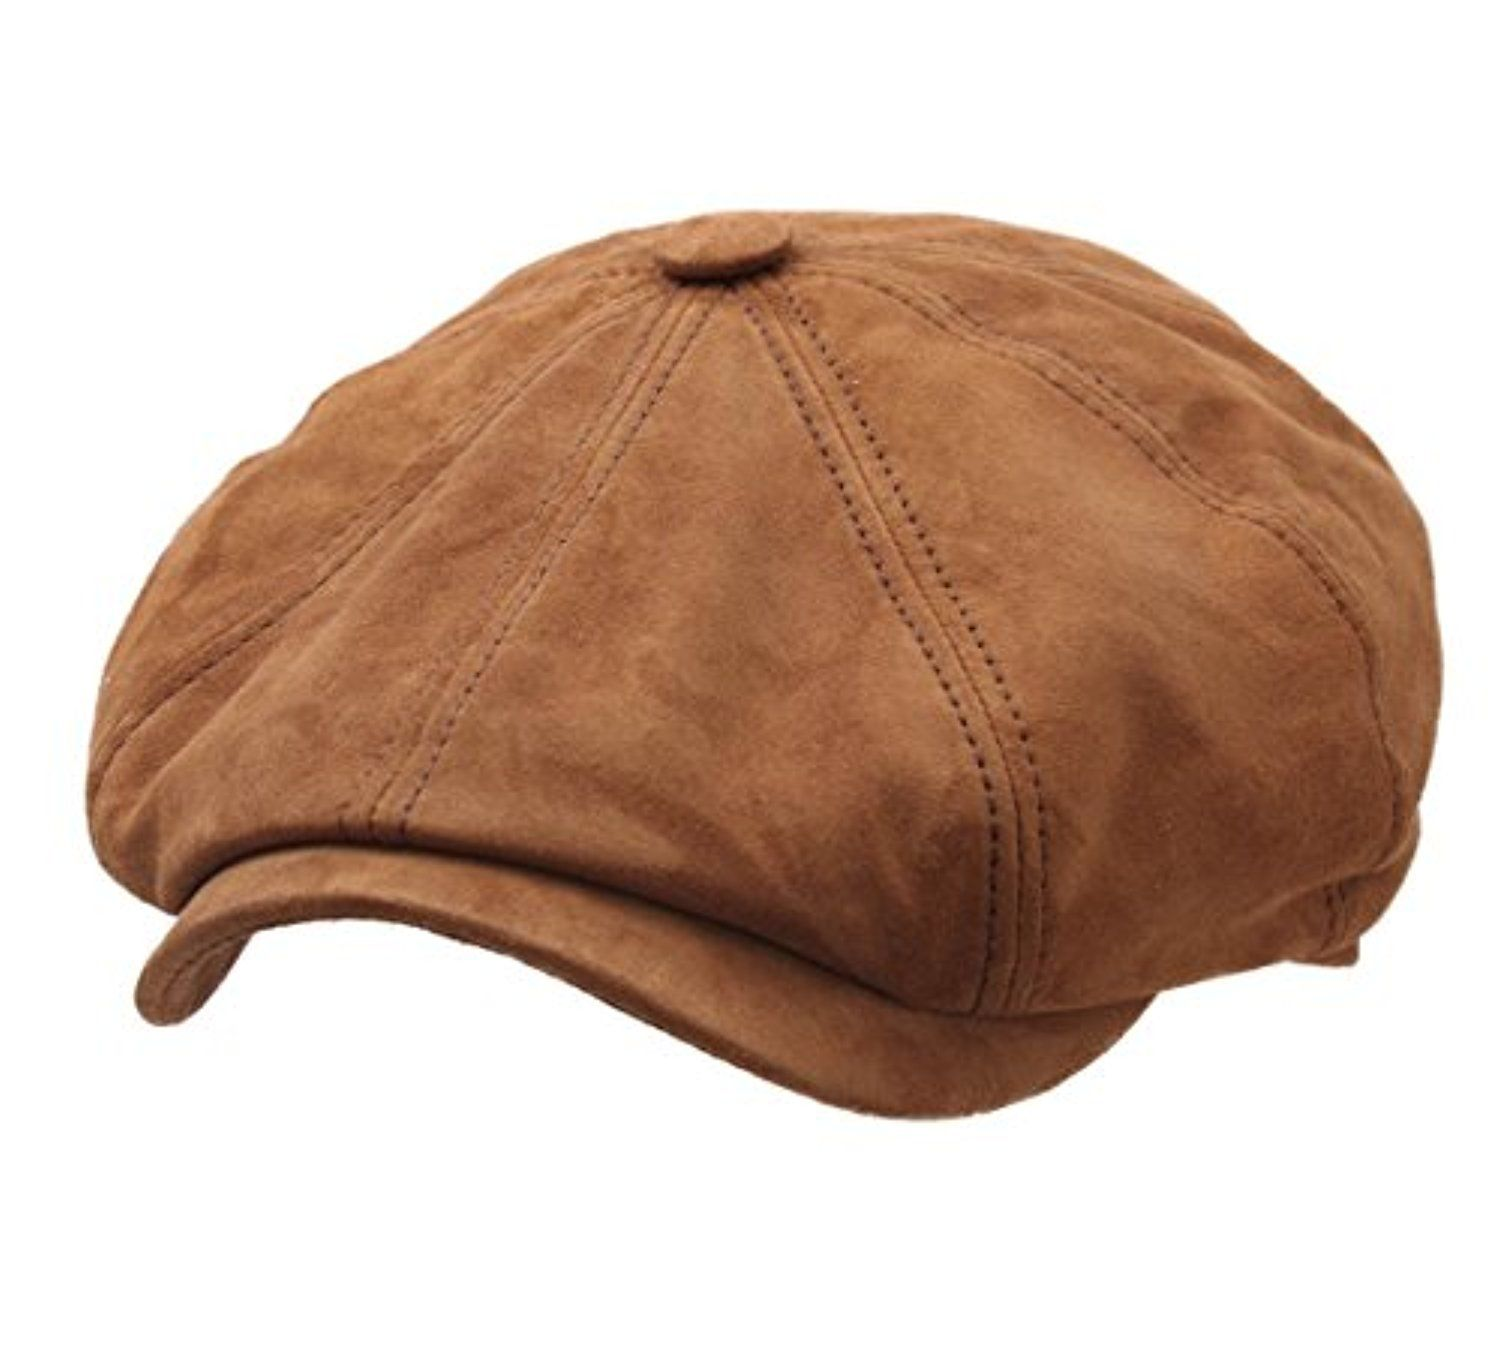 a41eec5b1f8 Stetson Men s Hatteras Goat Suede Leather Flat Cap -- Awesome products  selected by Anna Churchill